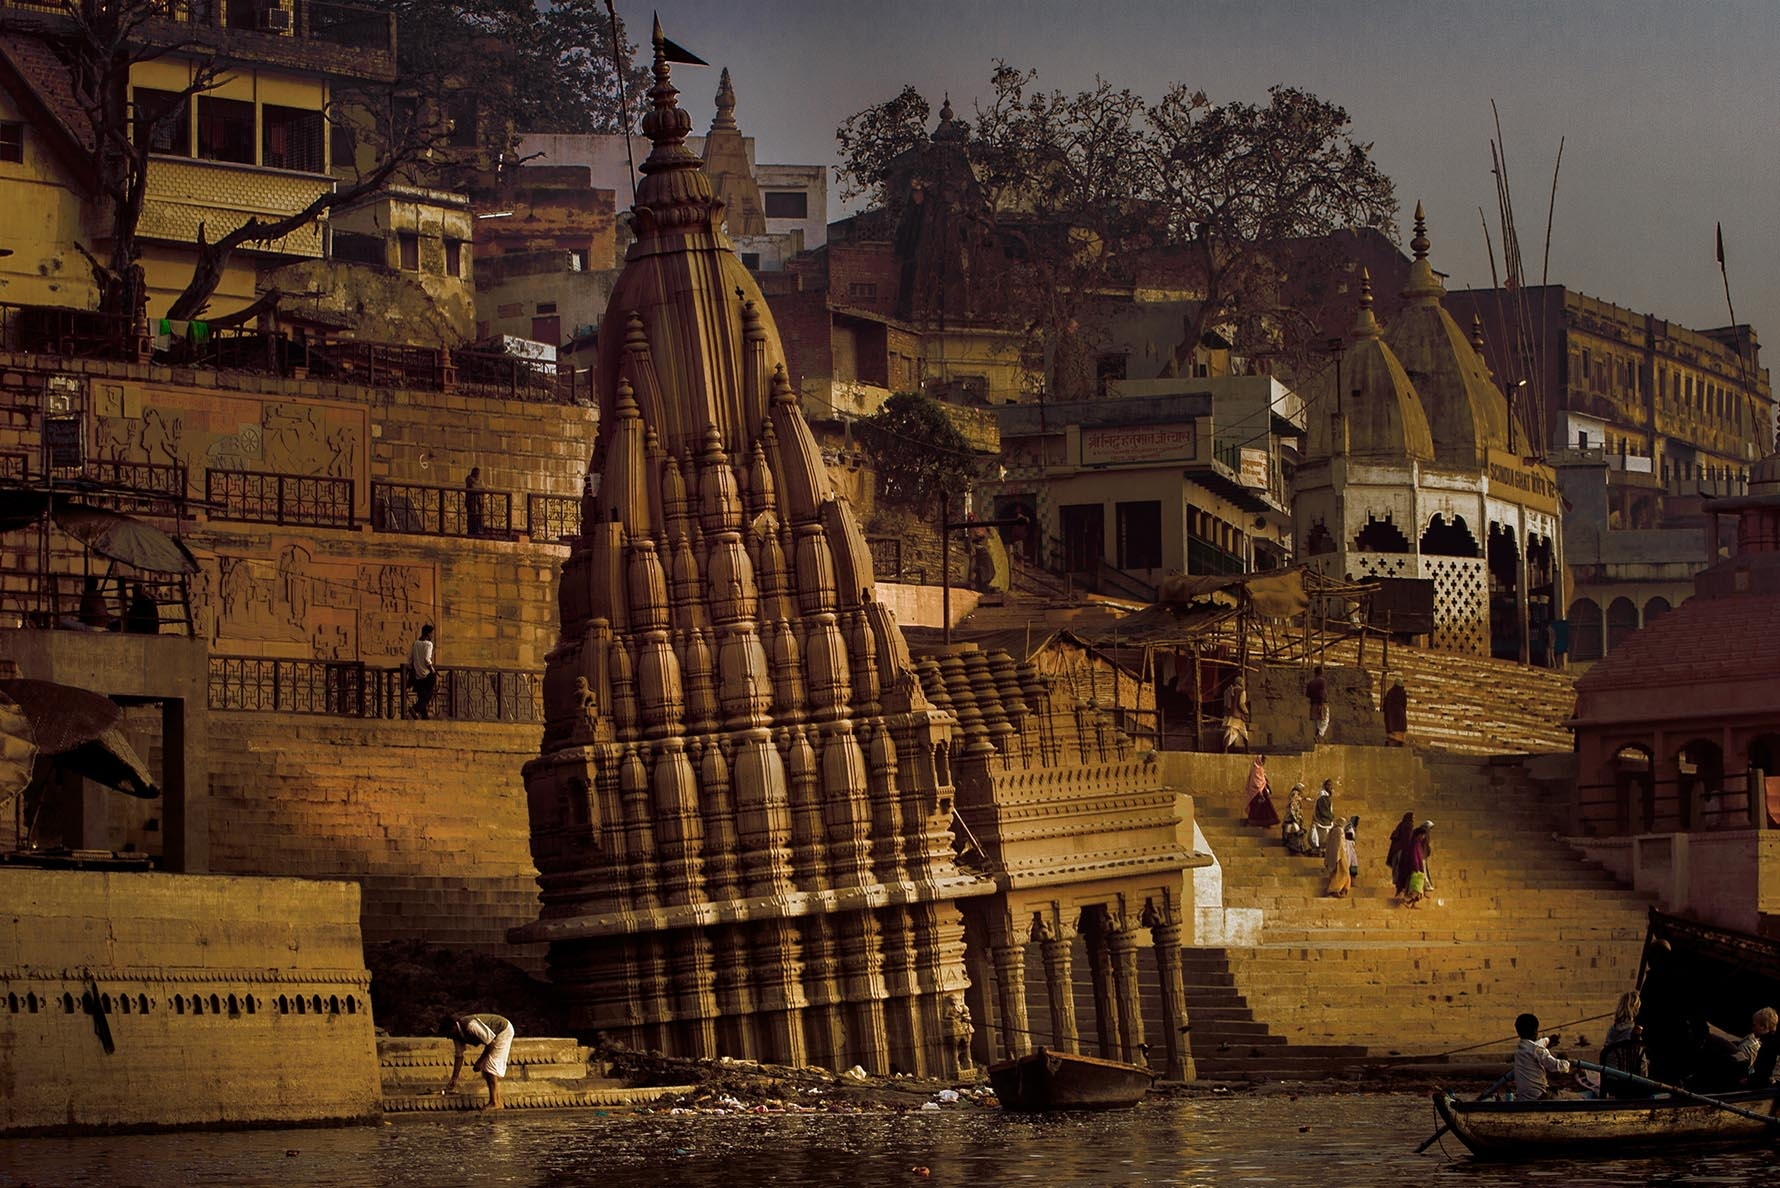 River Ganges and Ghats in Varanasi